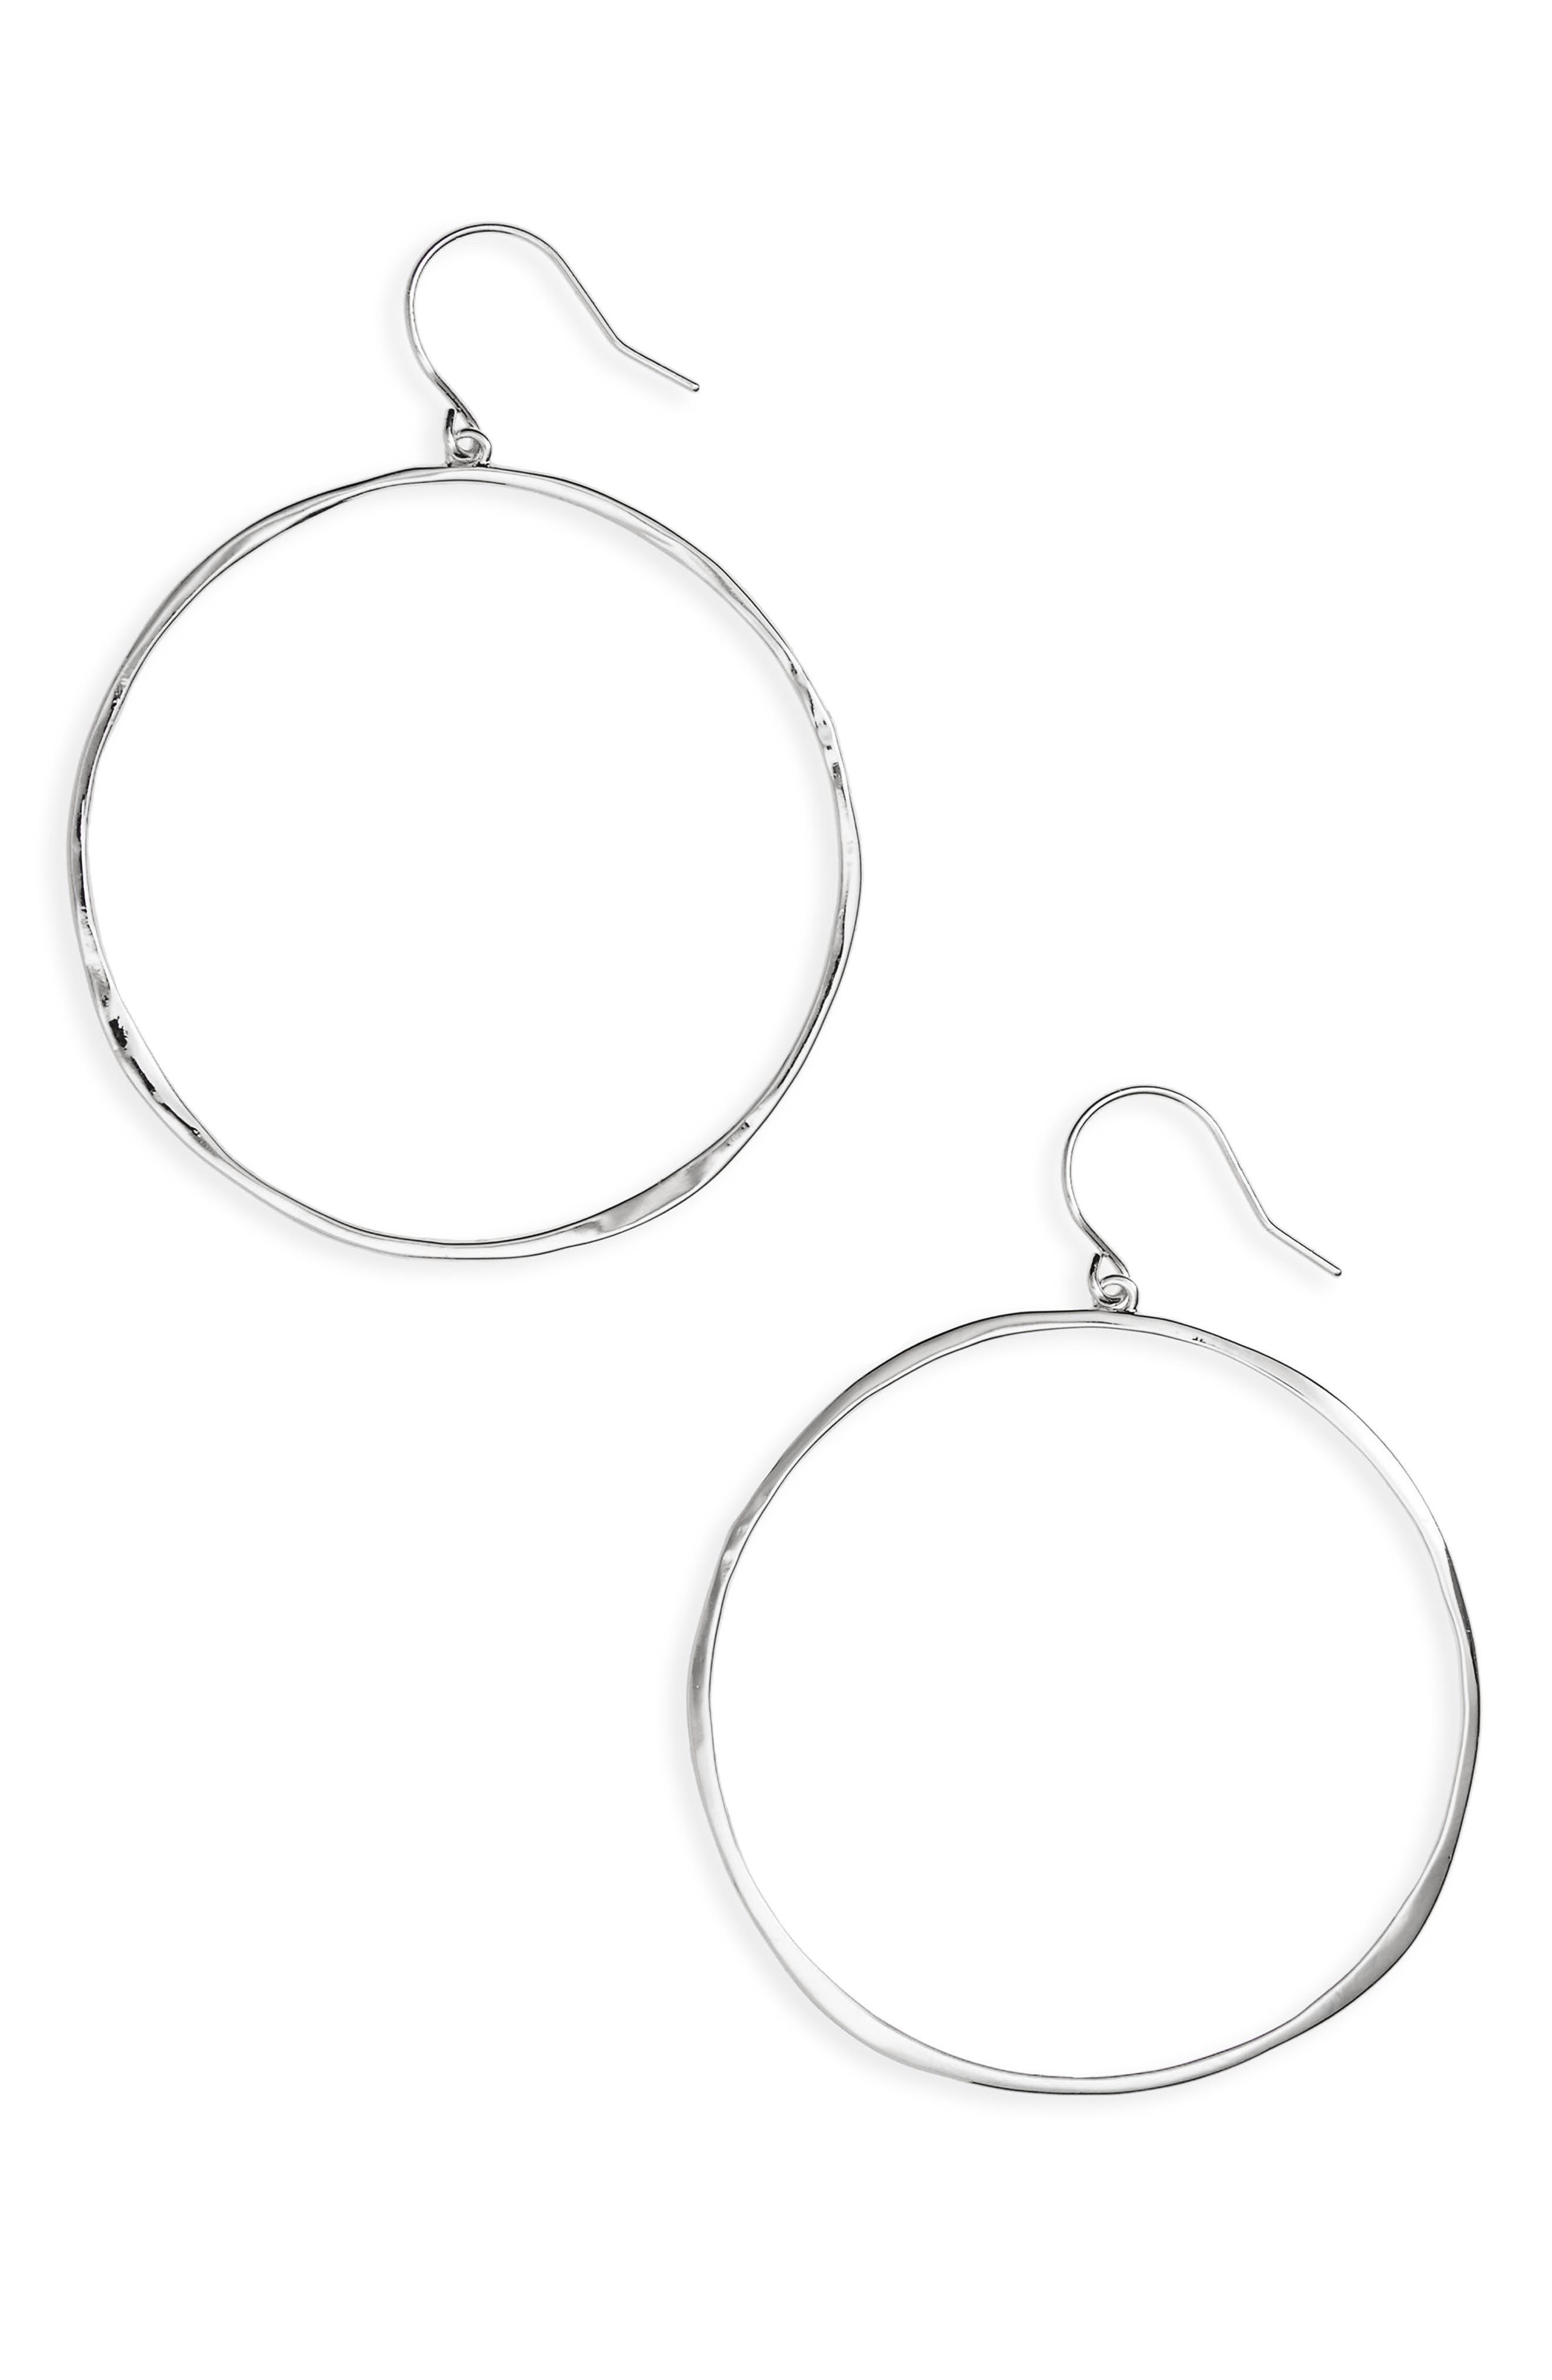 GORJANA, G Ring Hoops, Main thumbnail 1, color, SILVER